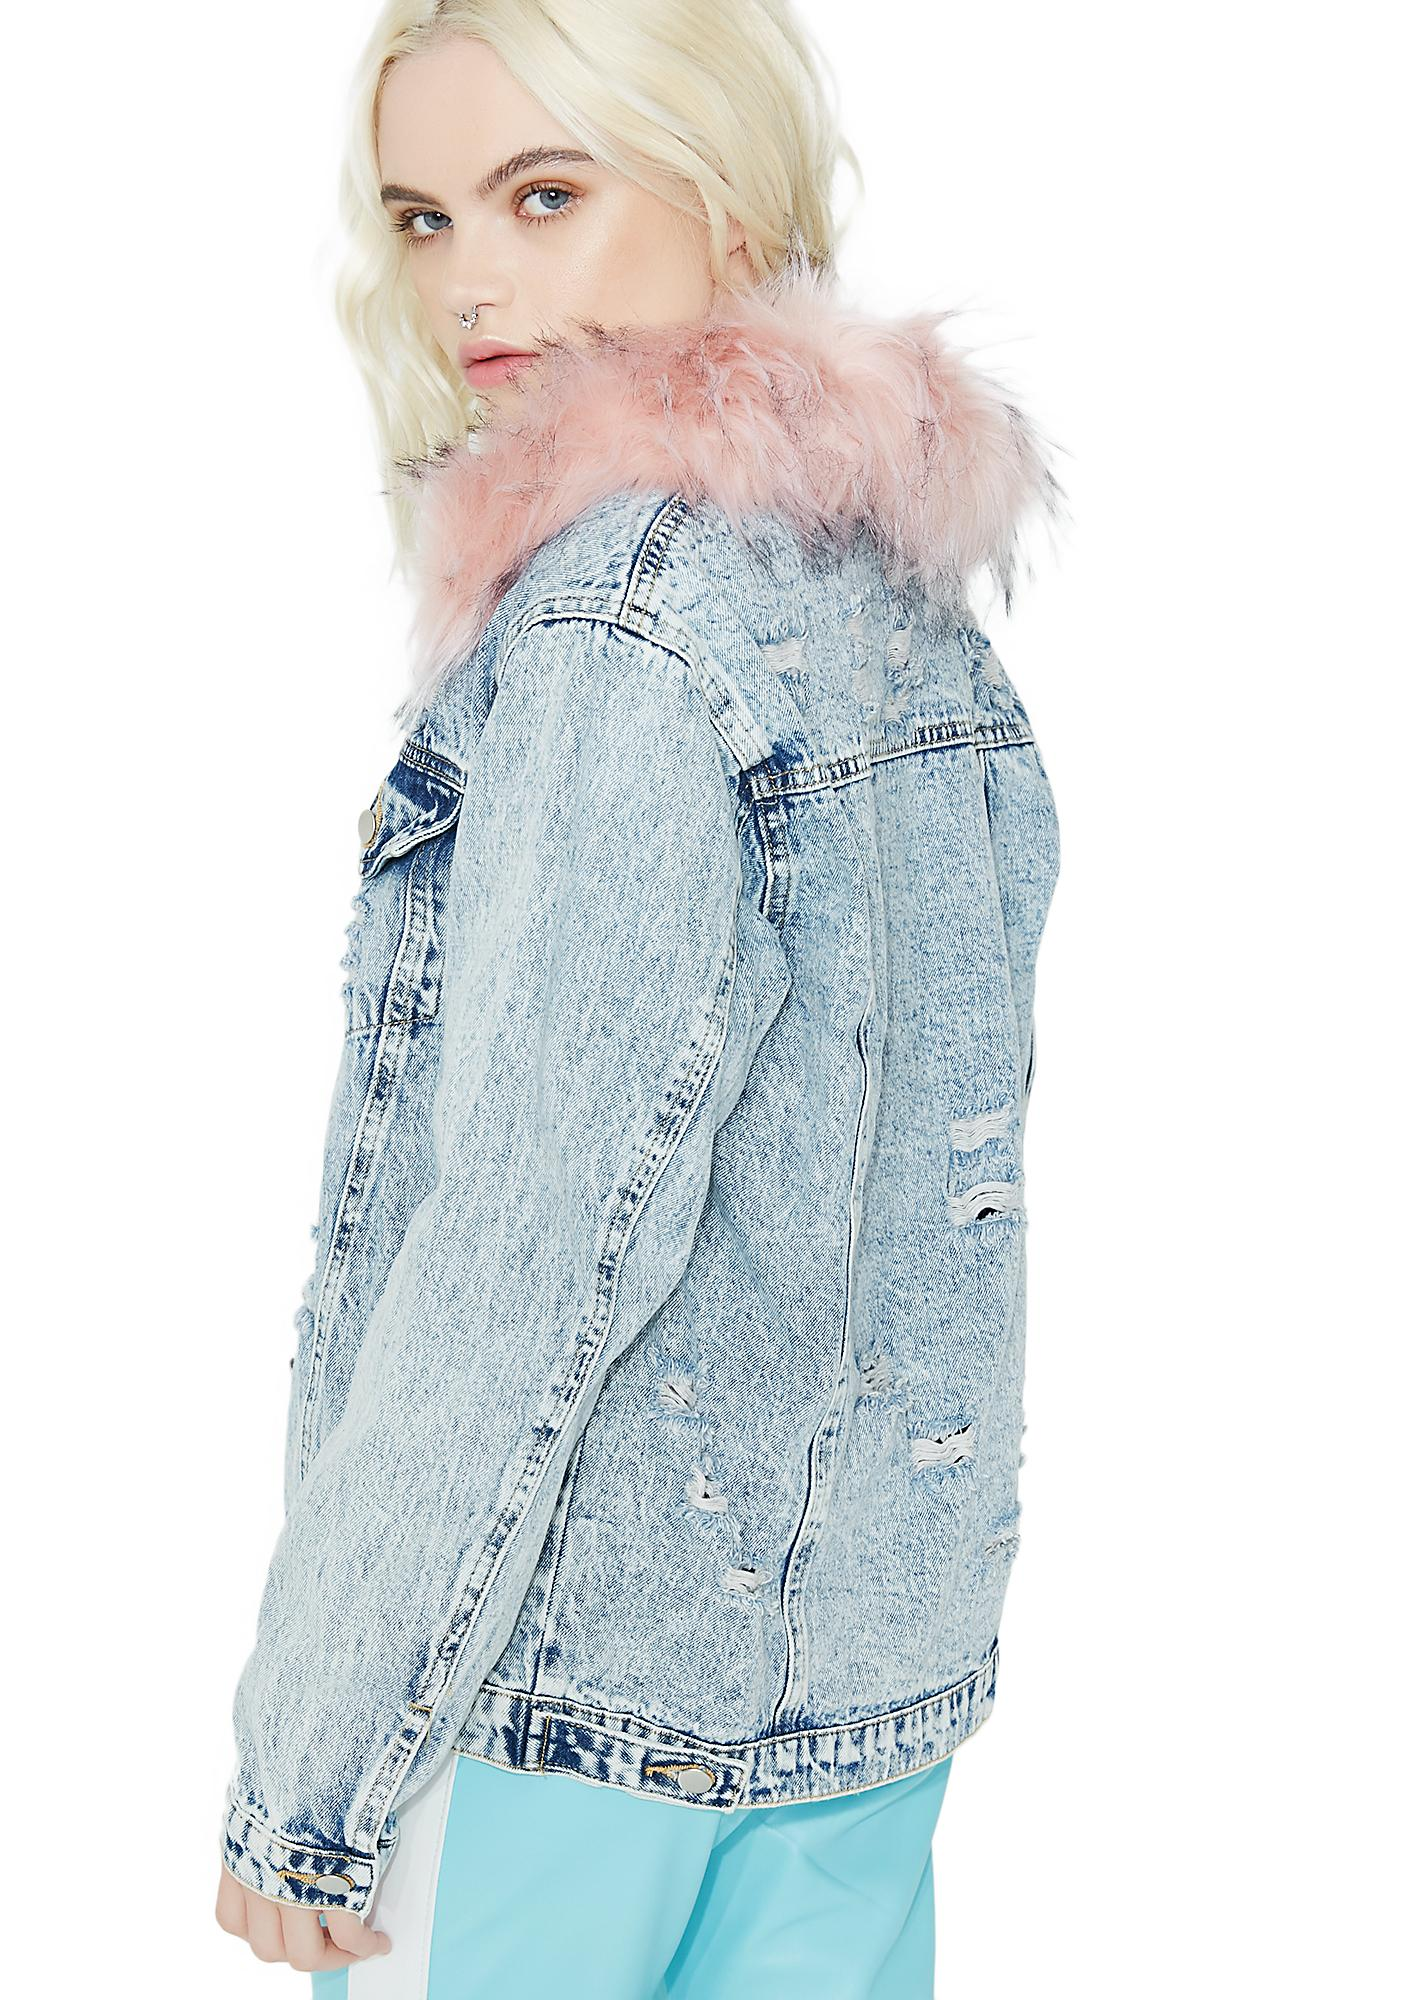 Brat Babe Denim Jacket